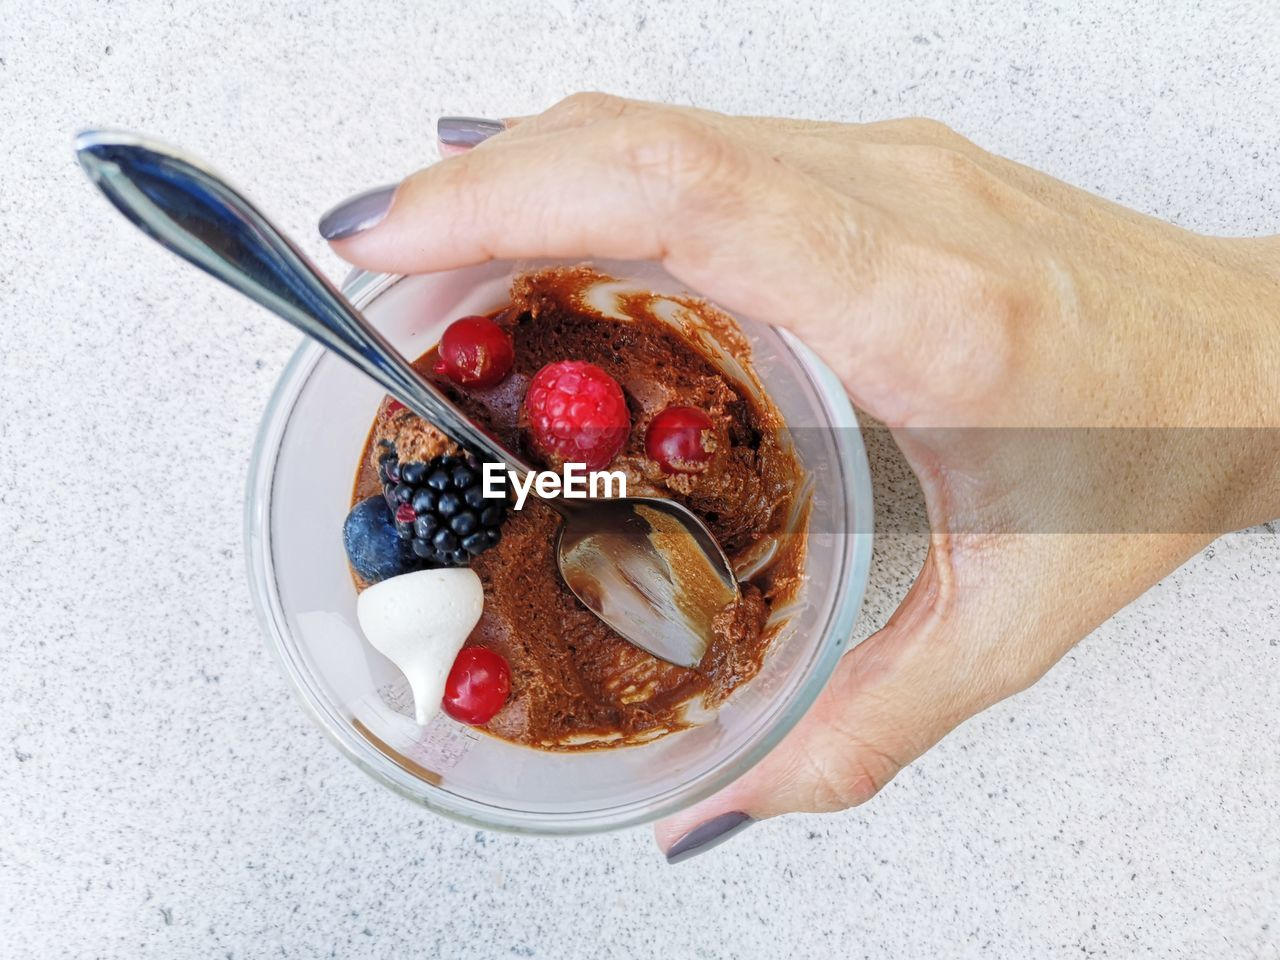 HIGH ANGLE VIEW OF HAND HOLDING BOWL OF FOOD